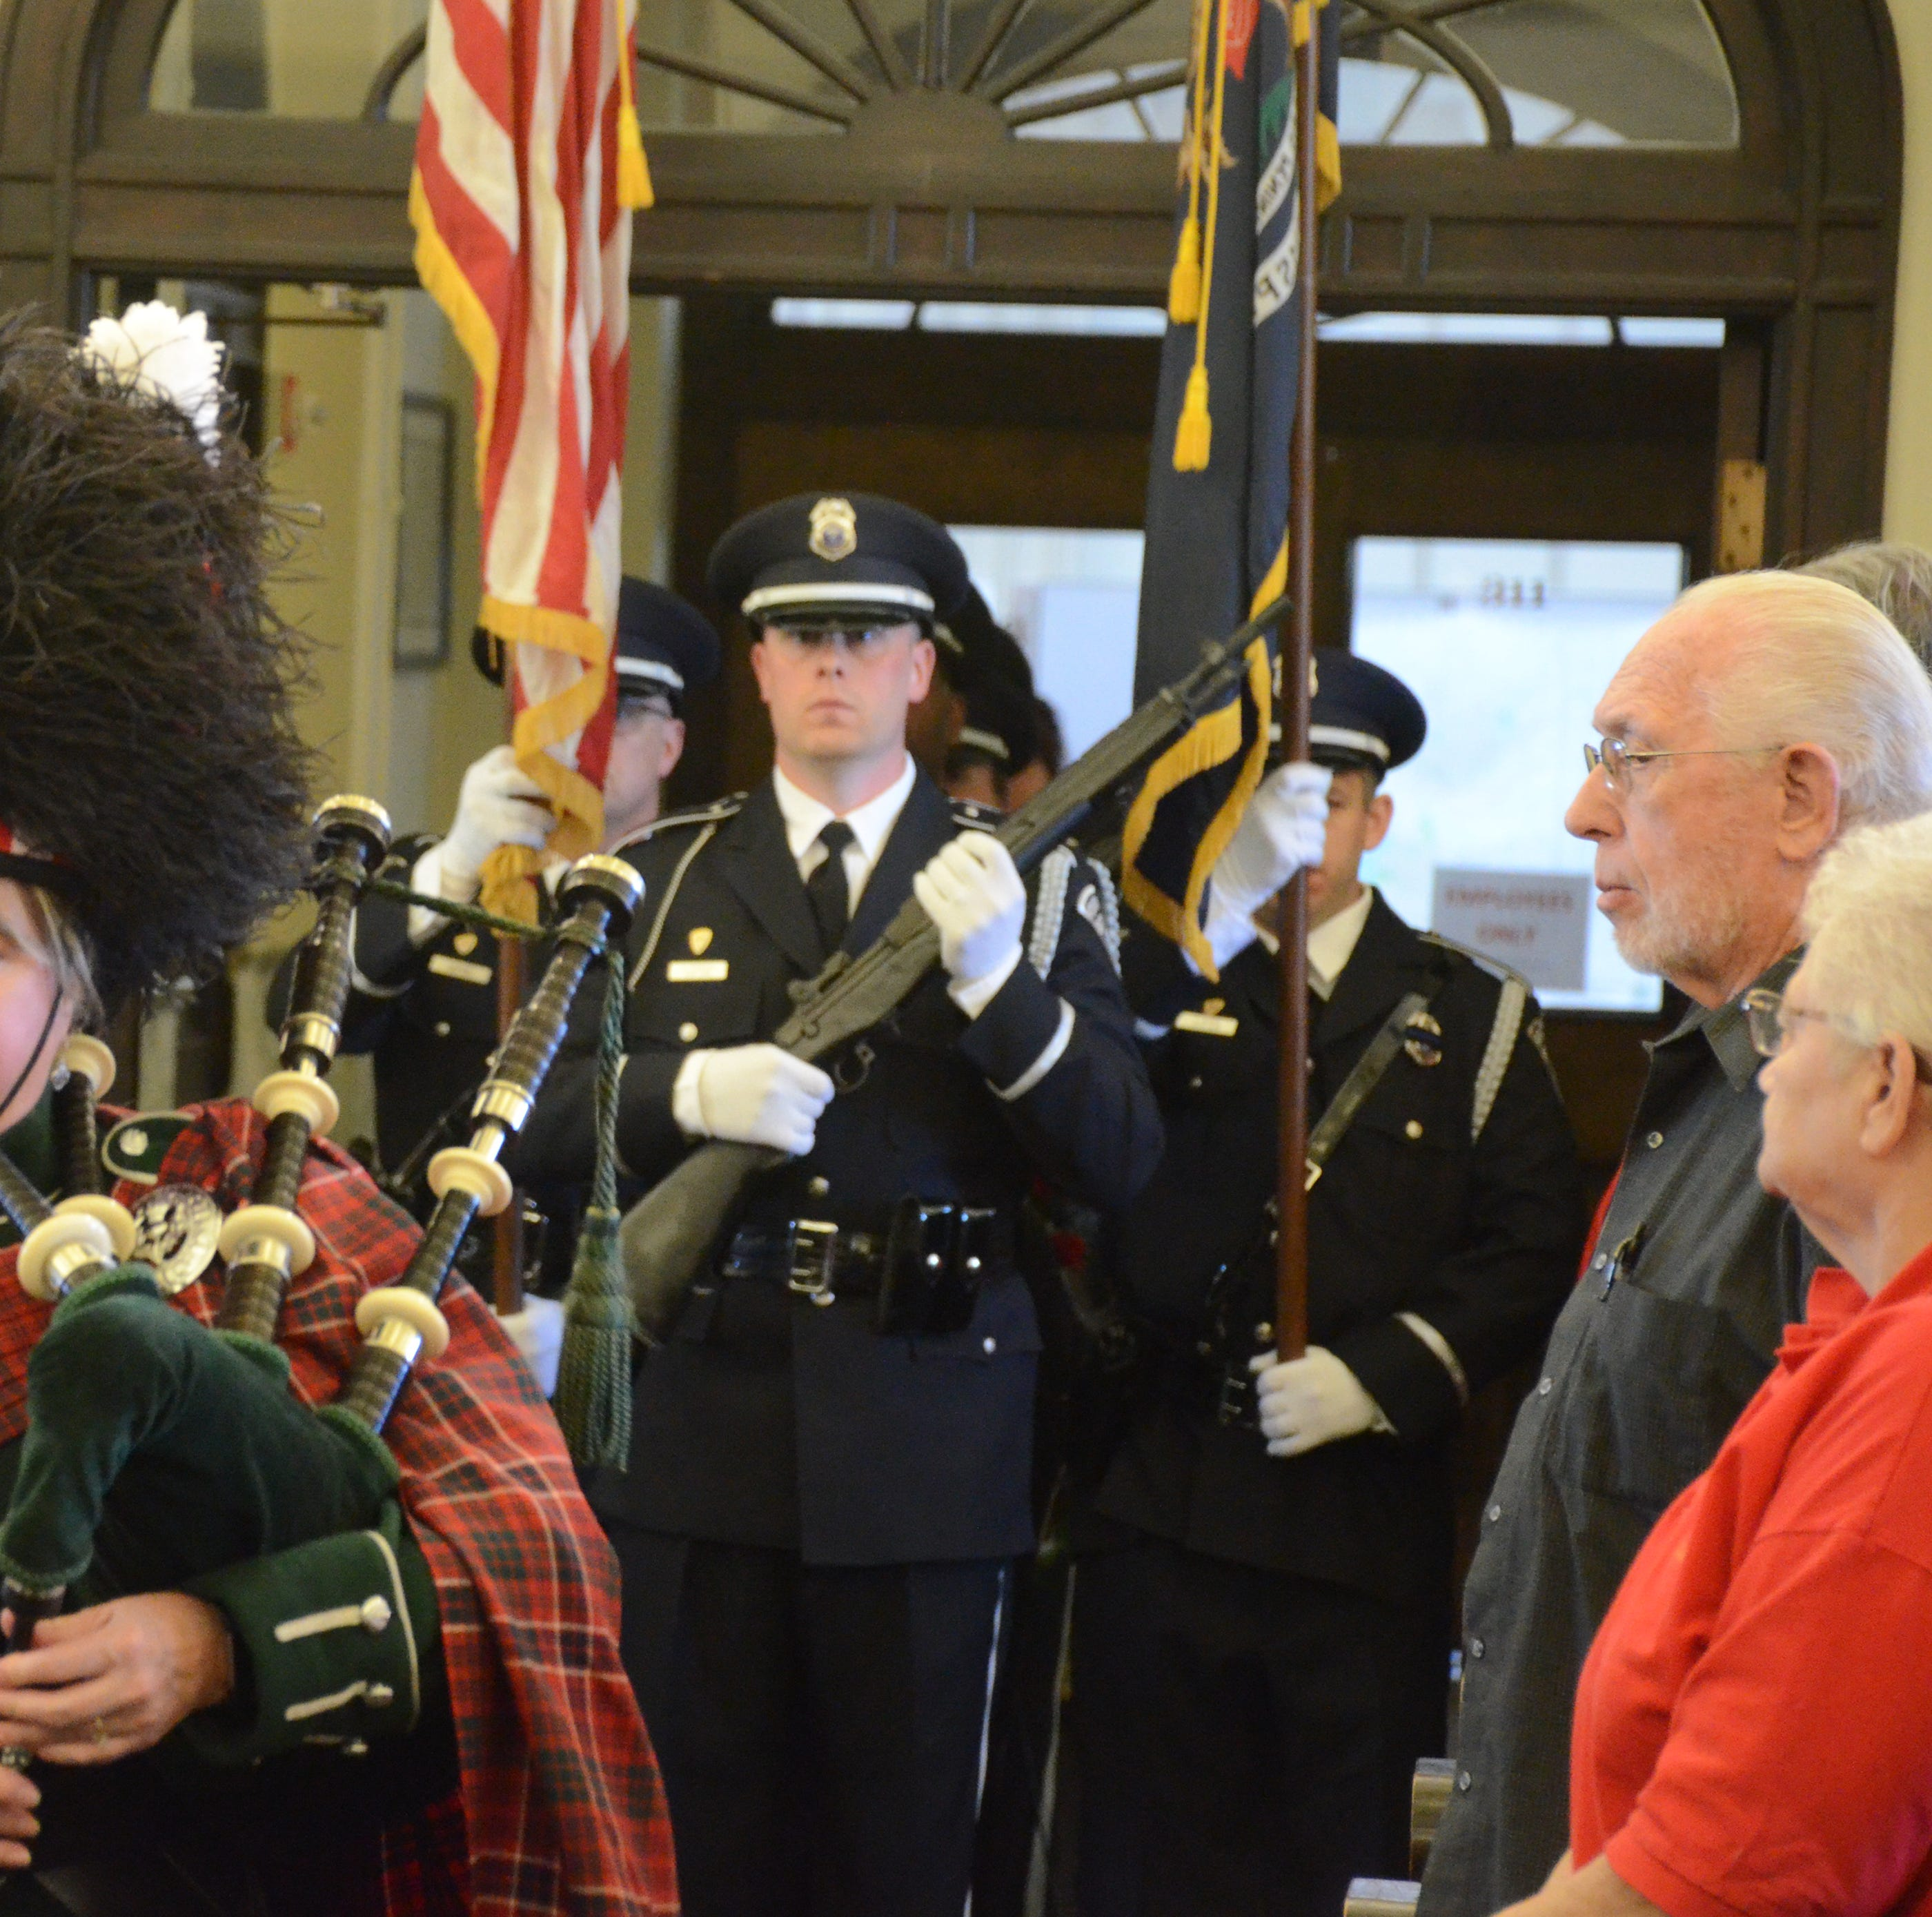 Battle Creek police honor the fallen, award Jeff Case Officer of the Year